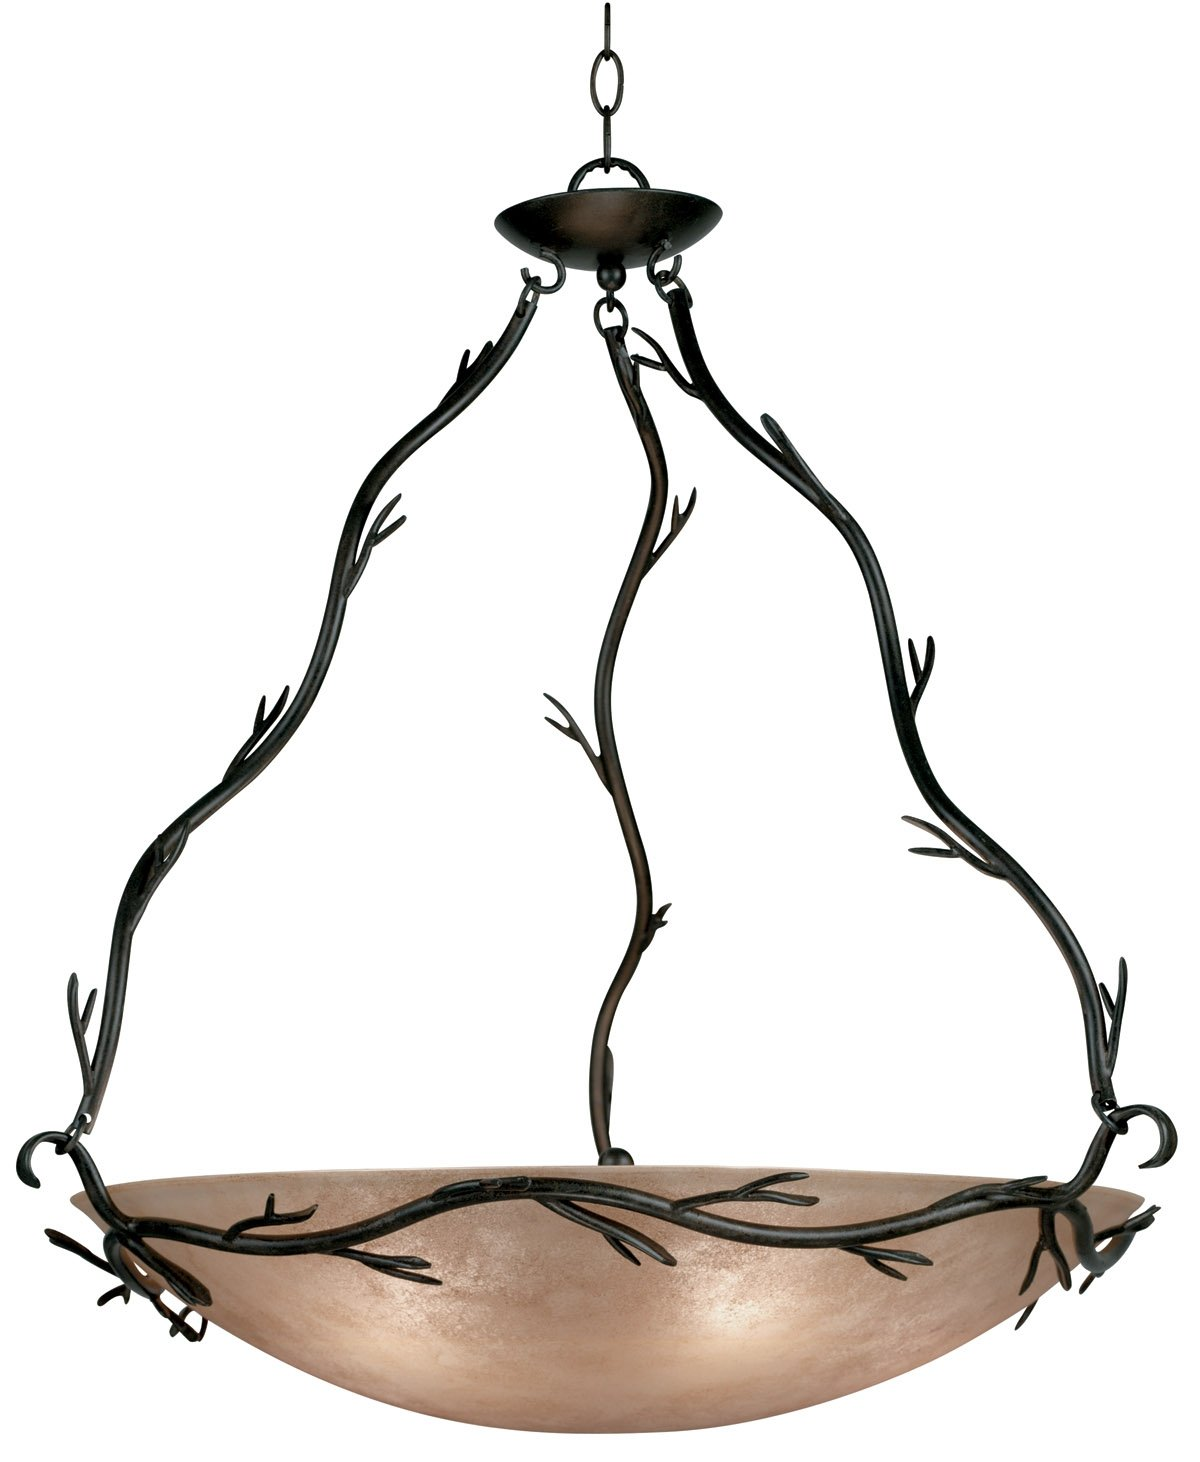 Kenroy Home 90904BRZ Twigs 5 Light Pendant, Bronze Finish by Kenroy Home